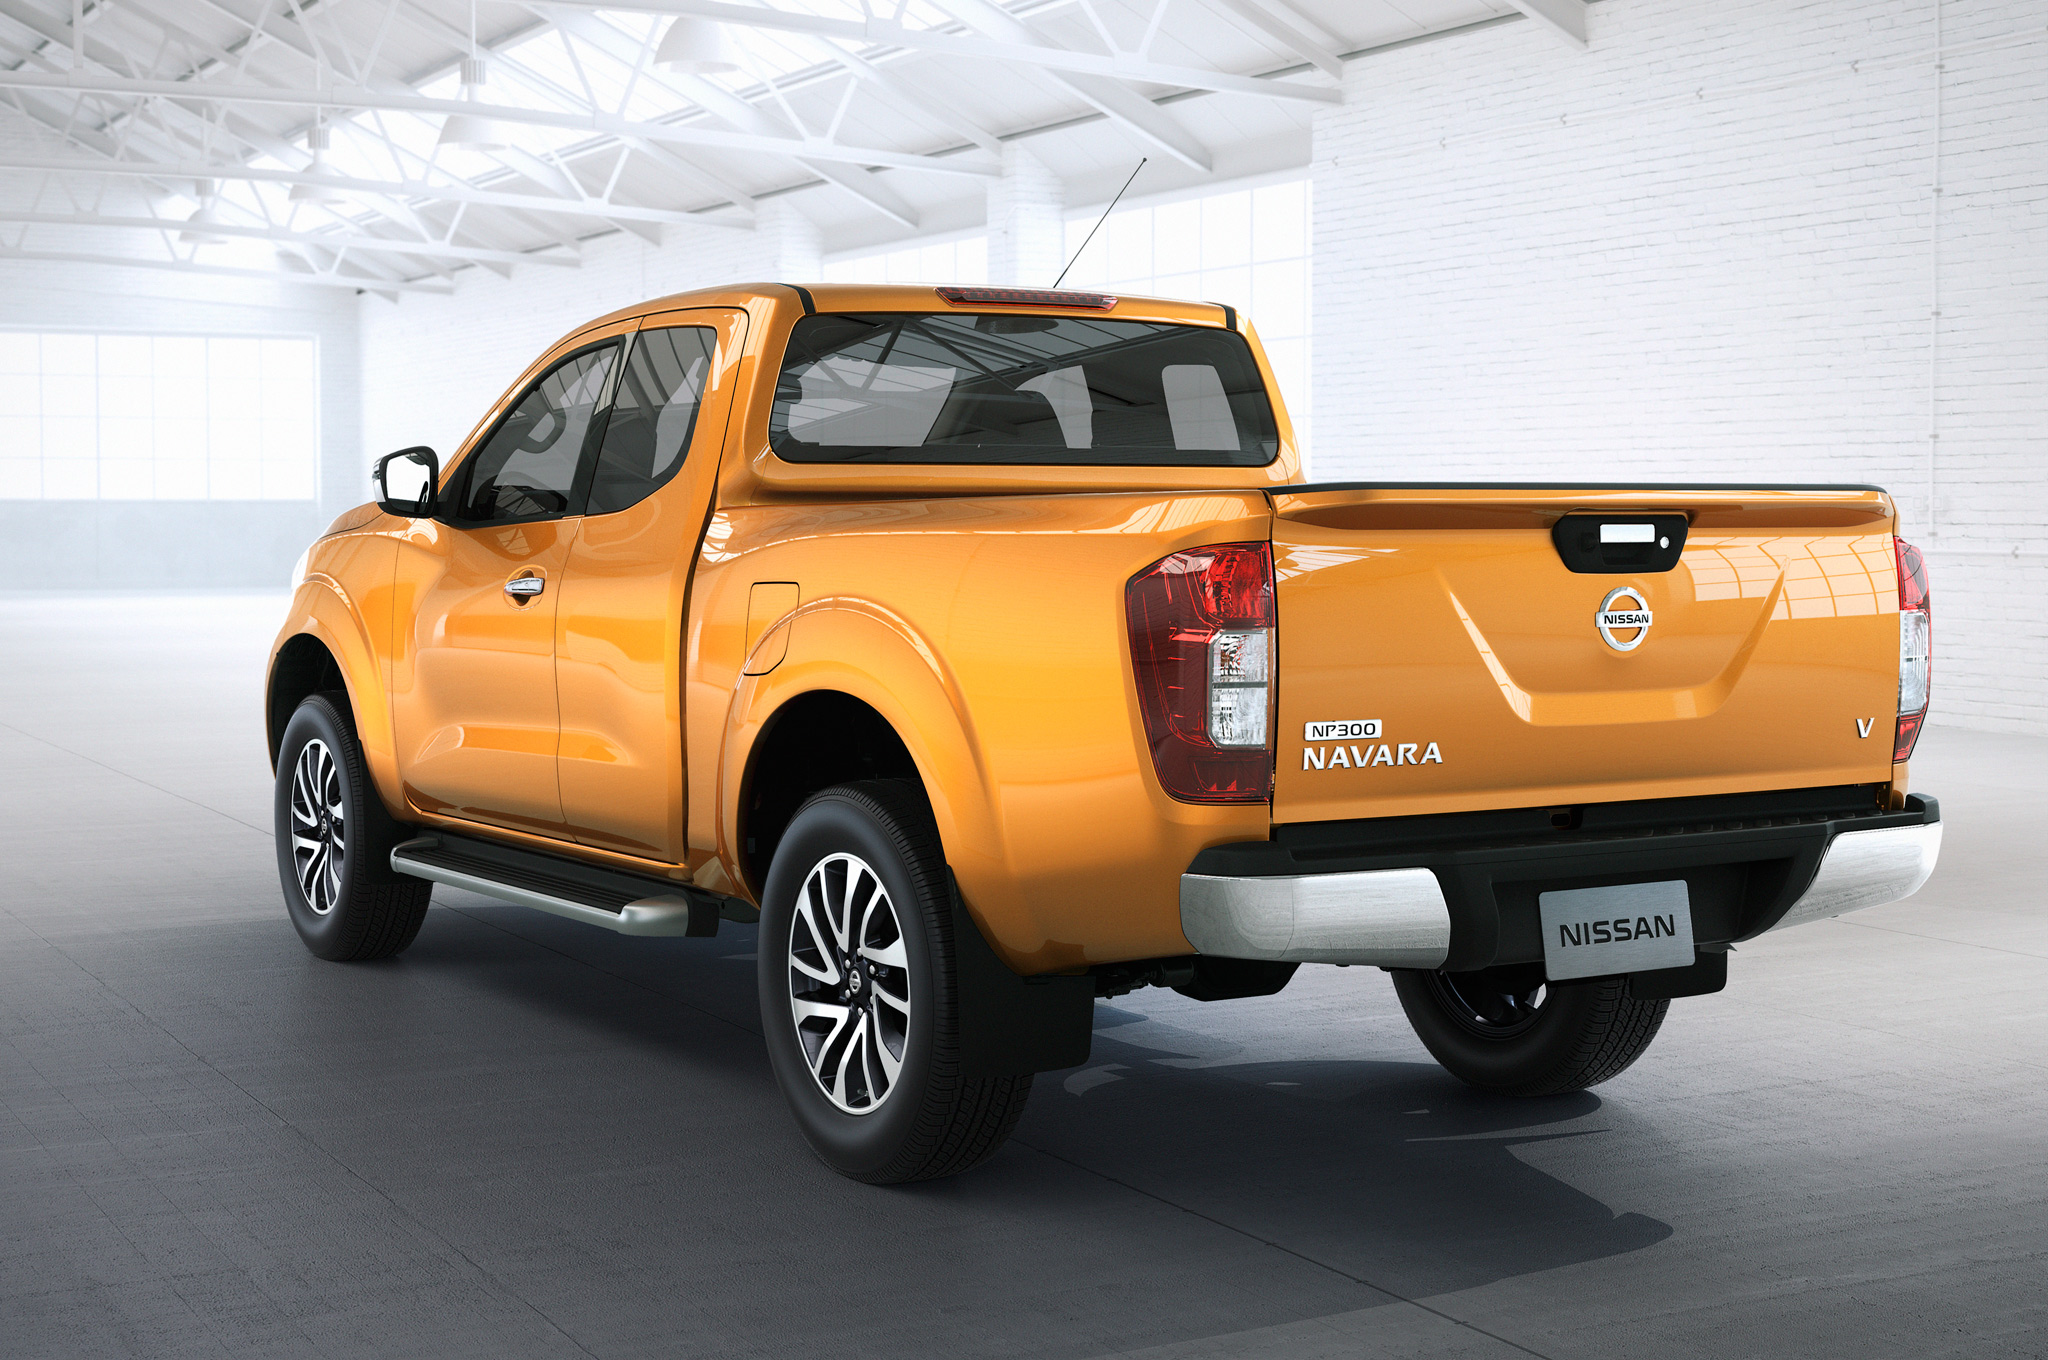 Nissan-NP300-Navara-12th-gen-rear-side-view